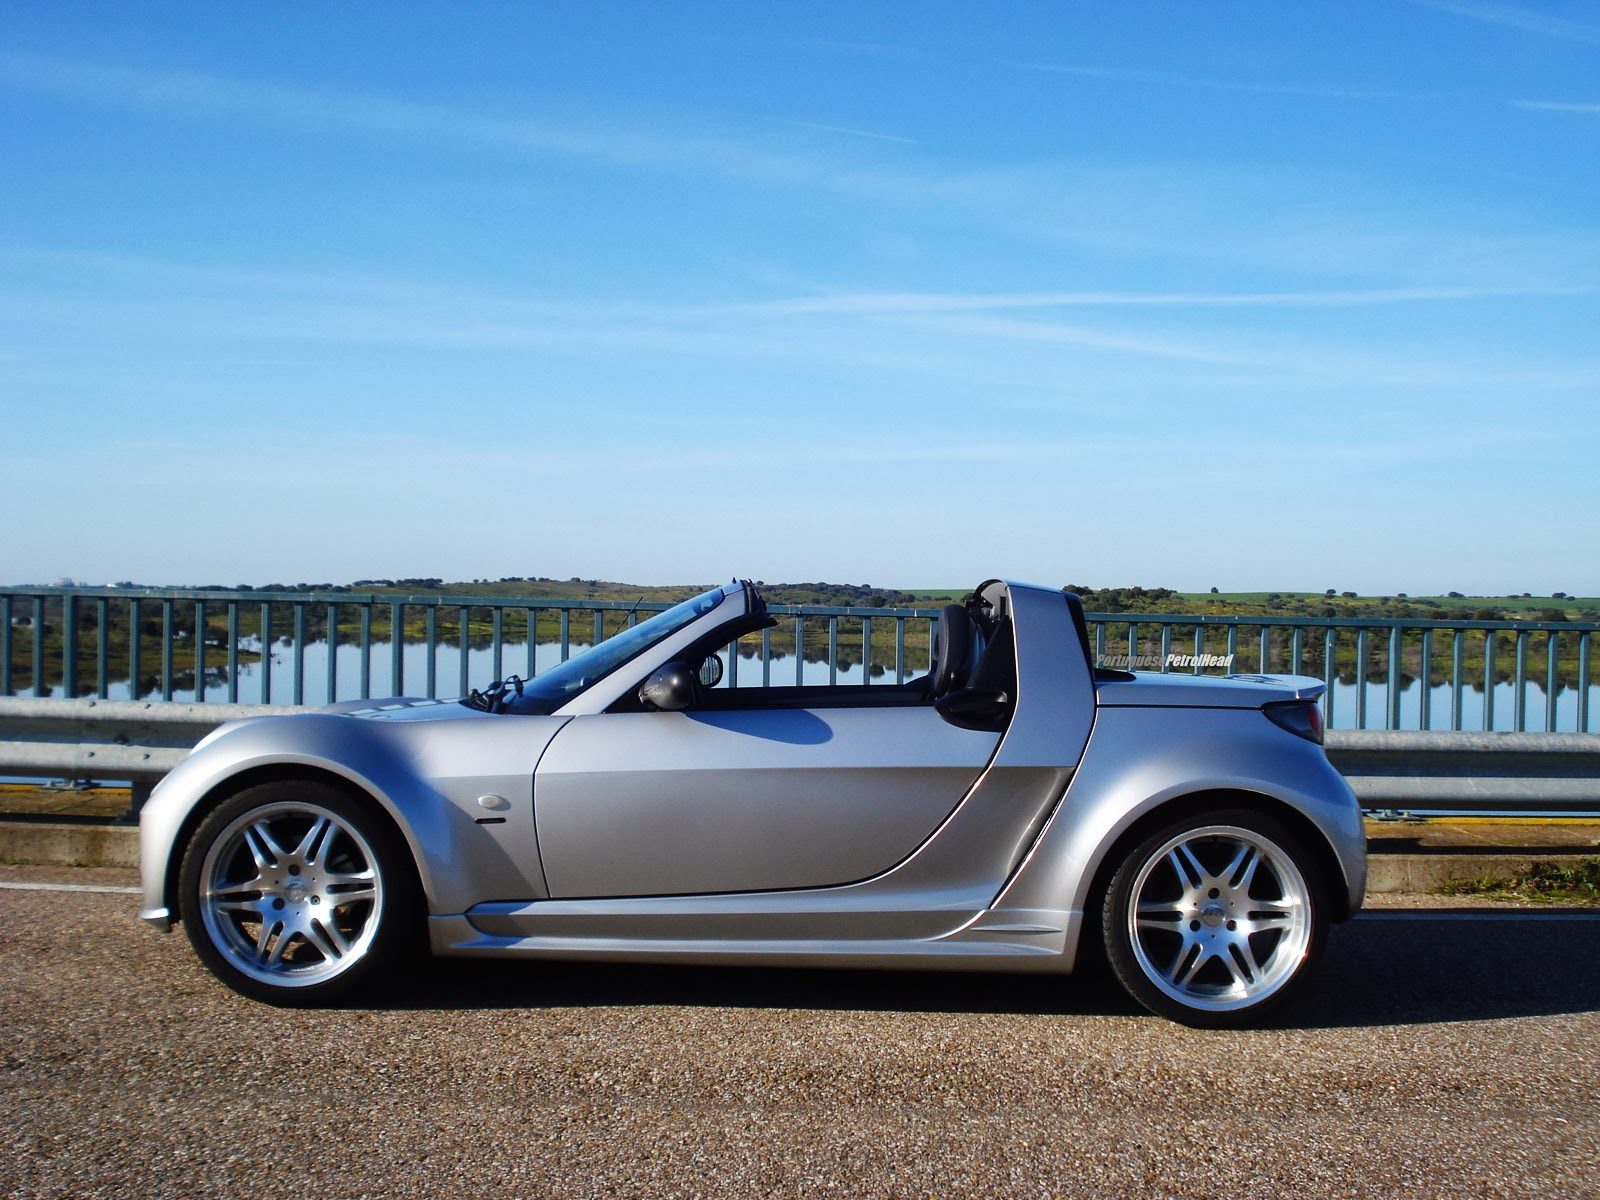 Smart Roadster Brabus Review Smart Roadster Brabus Smart Roadster Brabus Photos